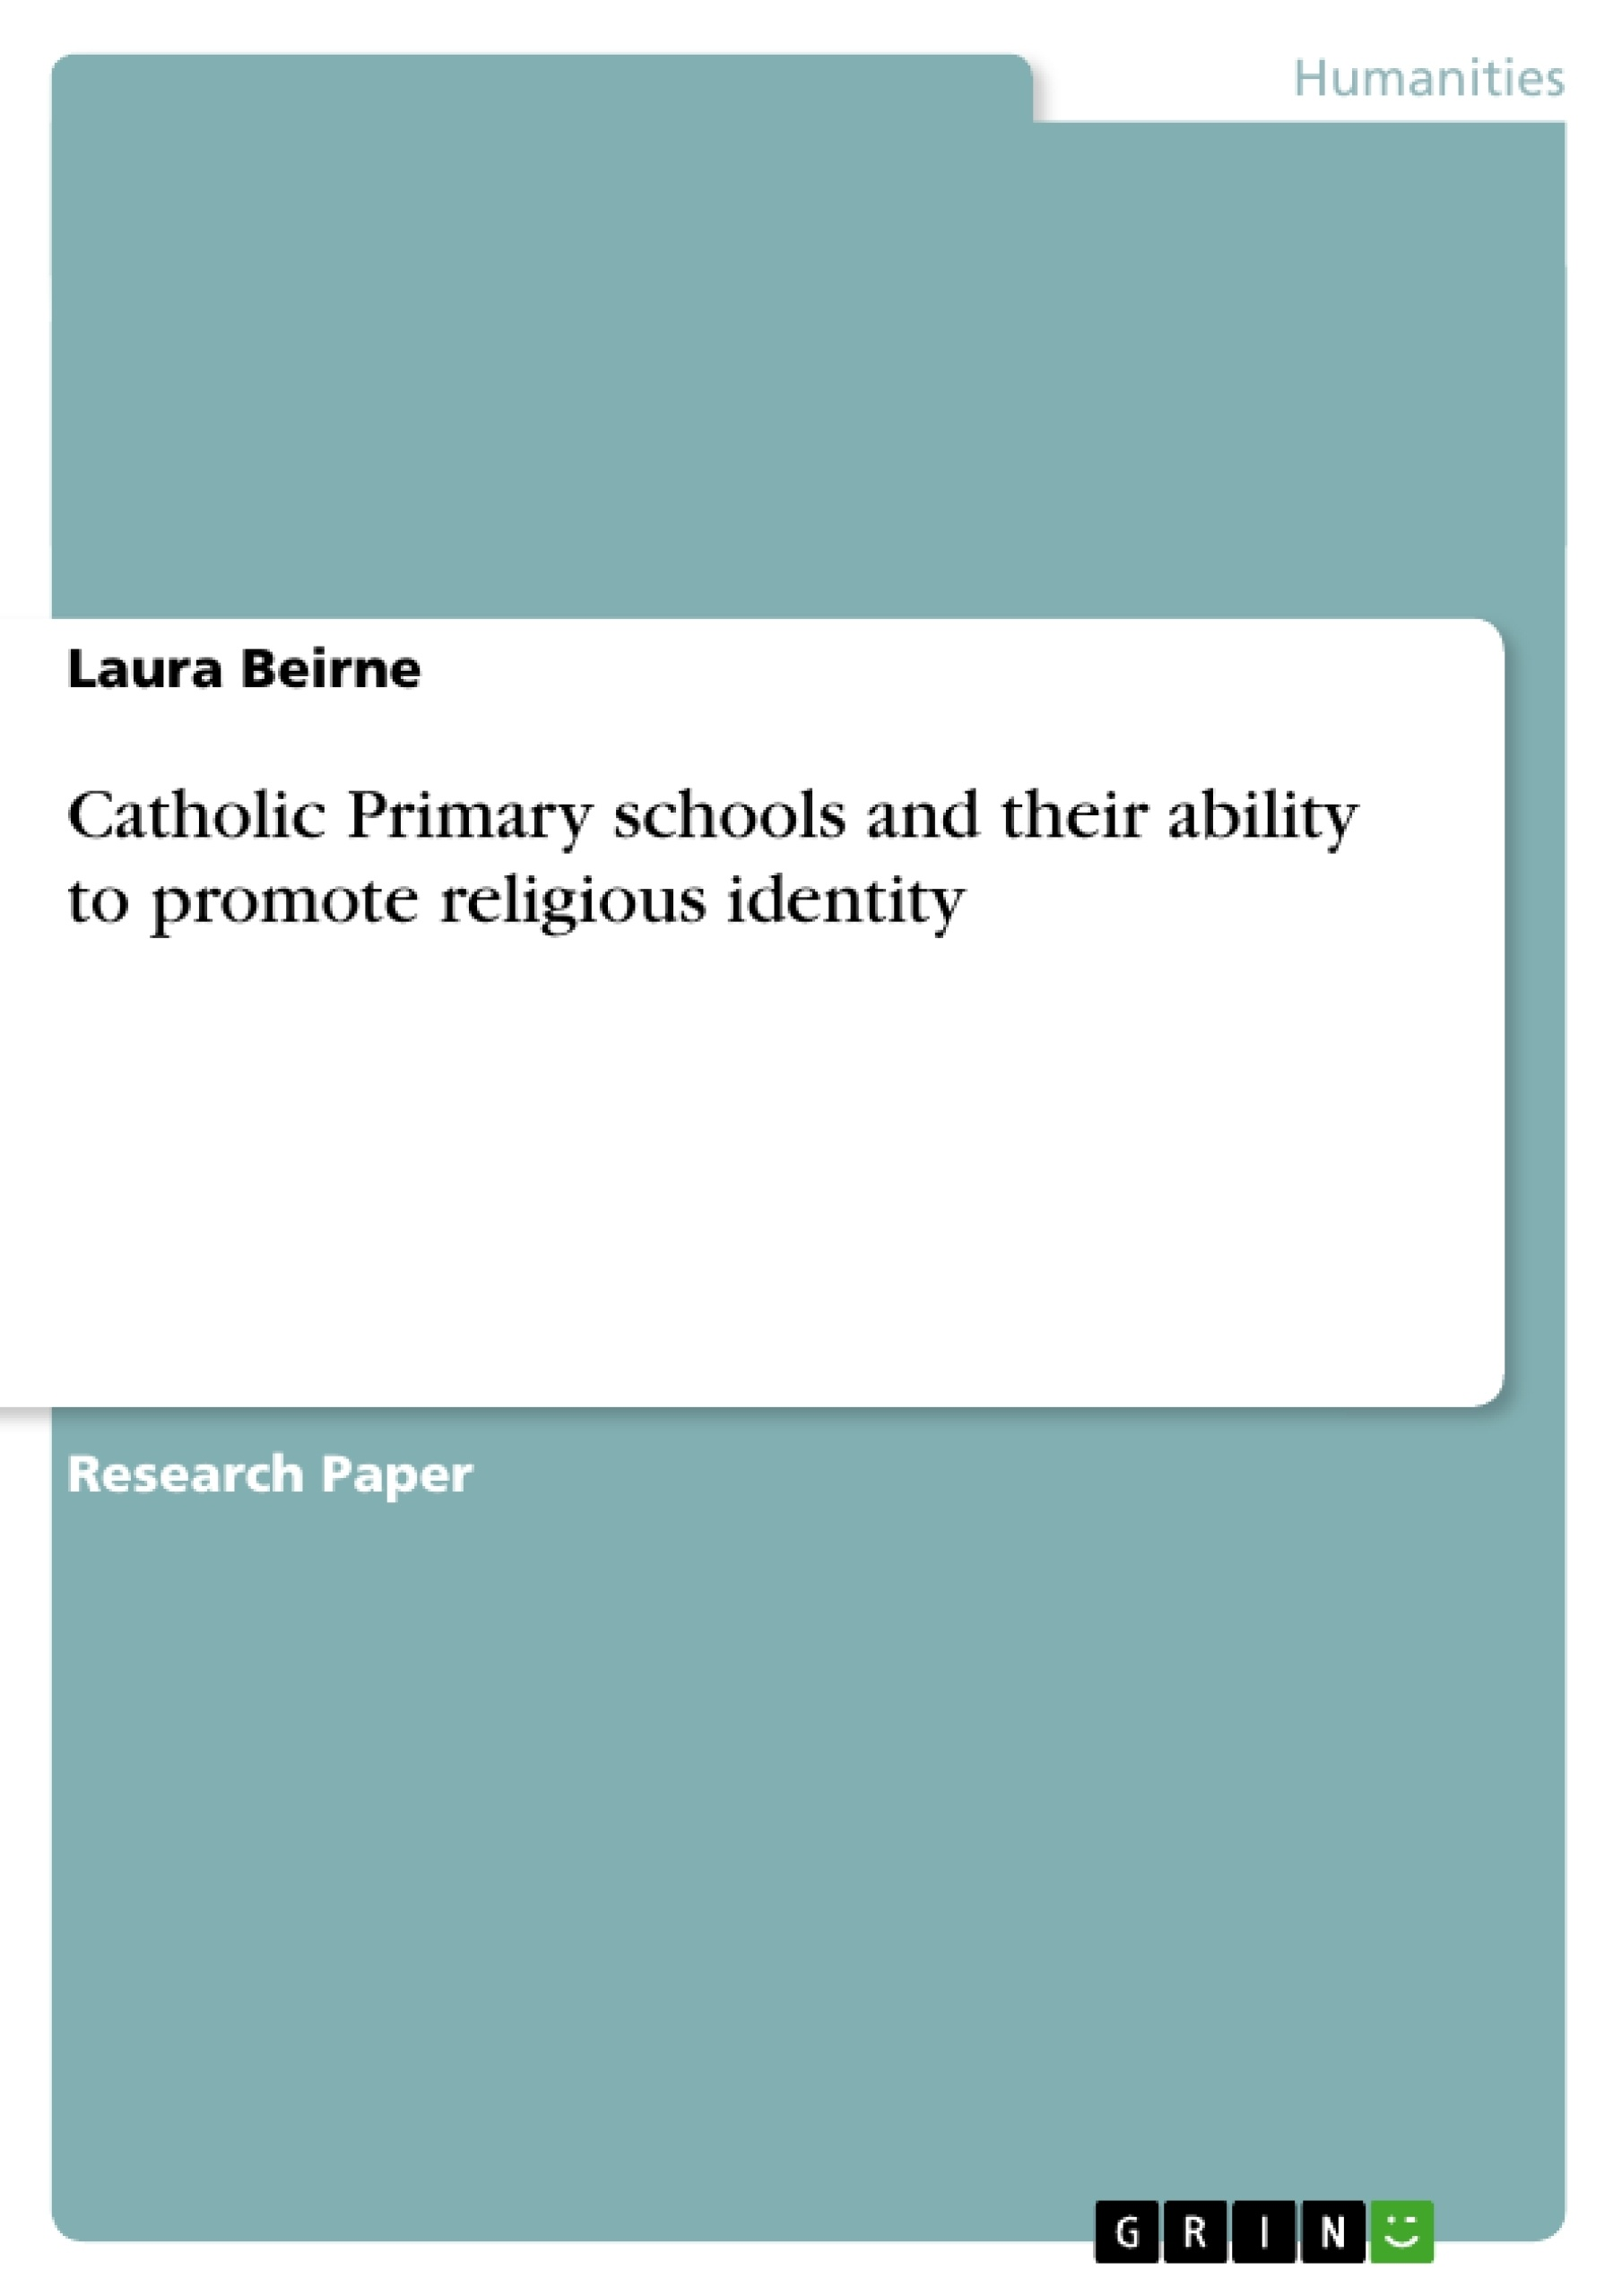 Title: Catholic Primary schools and their ability to promote religious identity